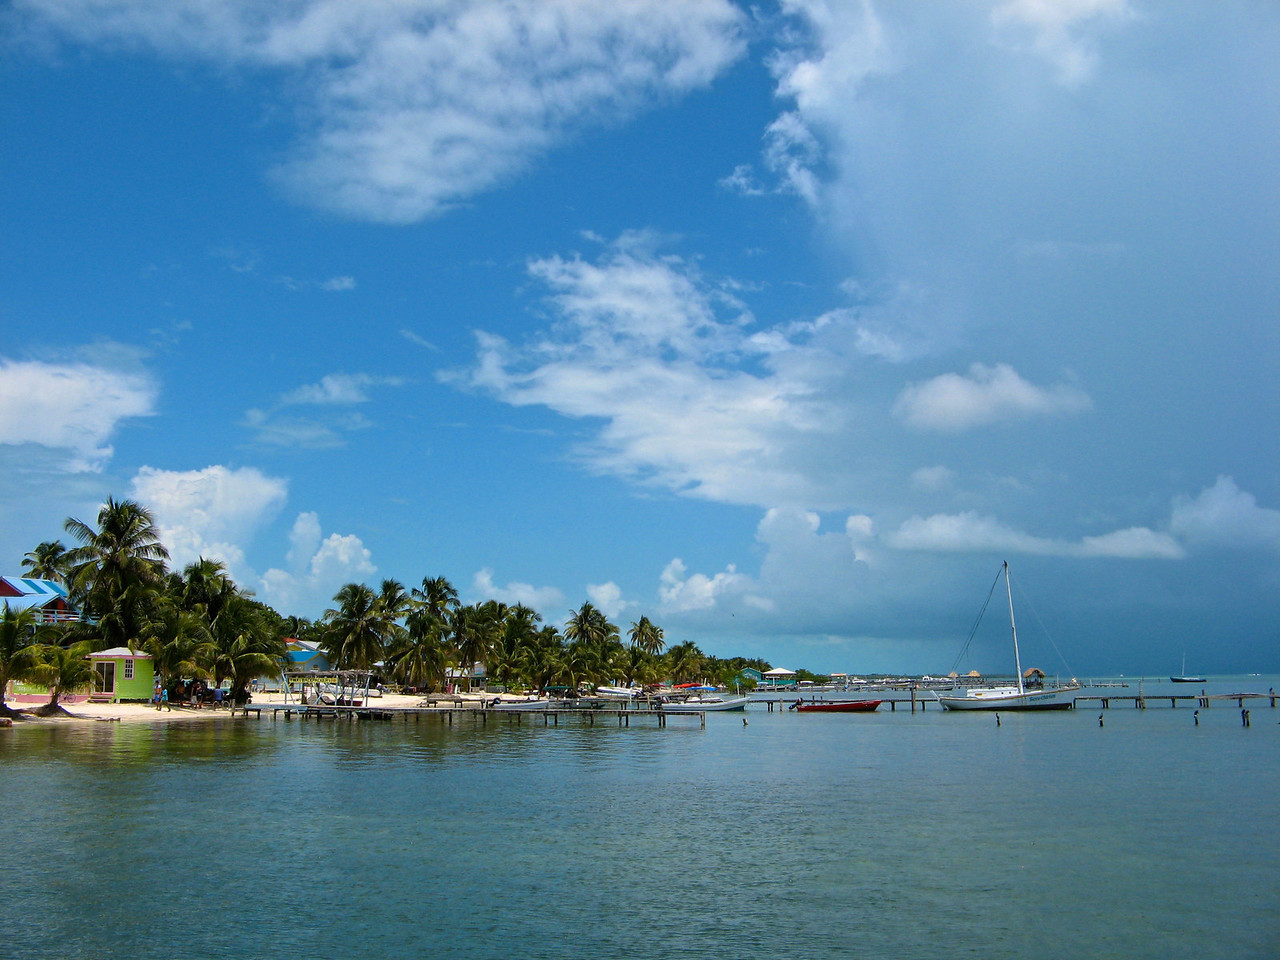 Caye Caulker is just a short 20 minute boat ride away.